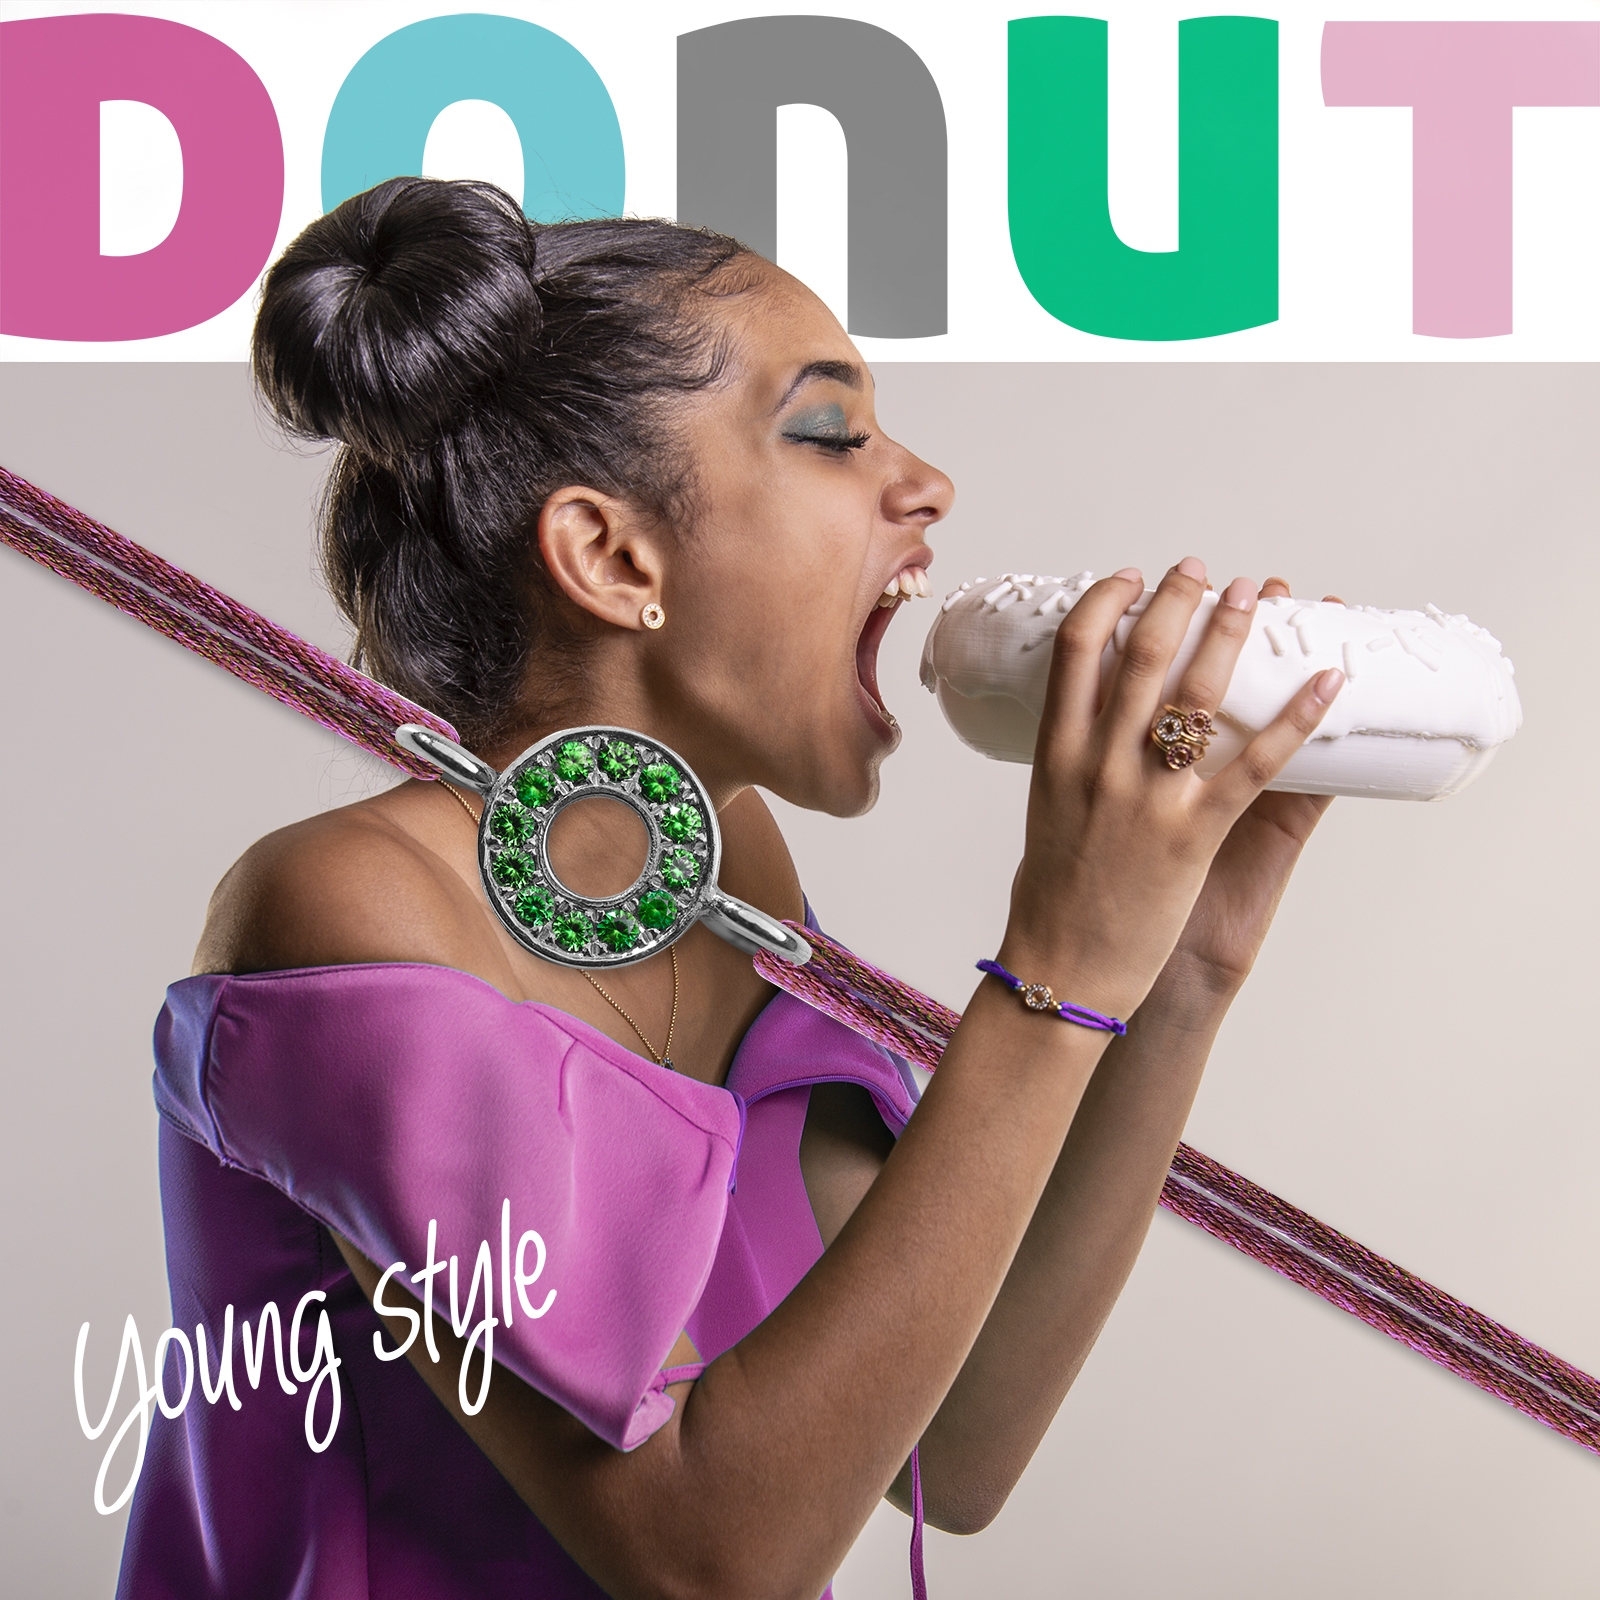 Donut YoungStyle